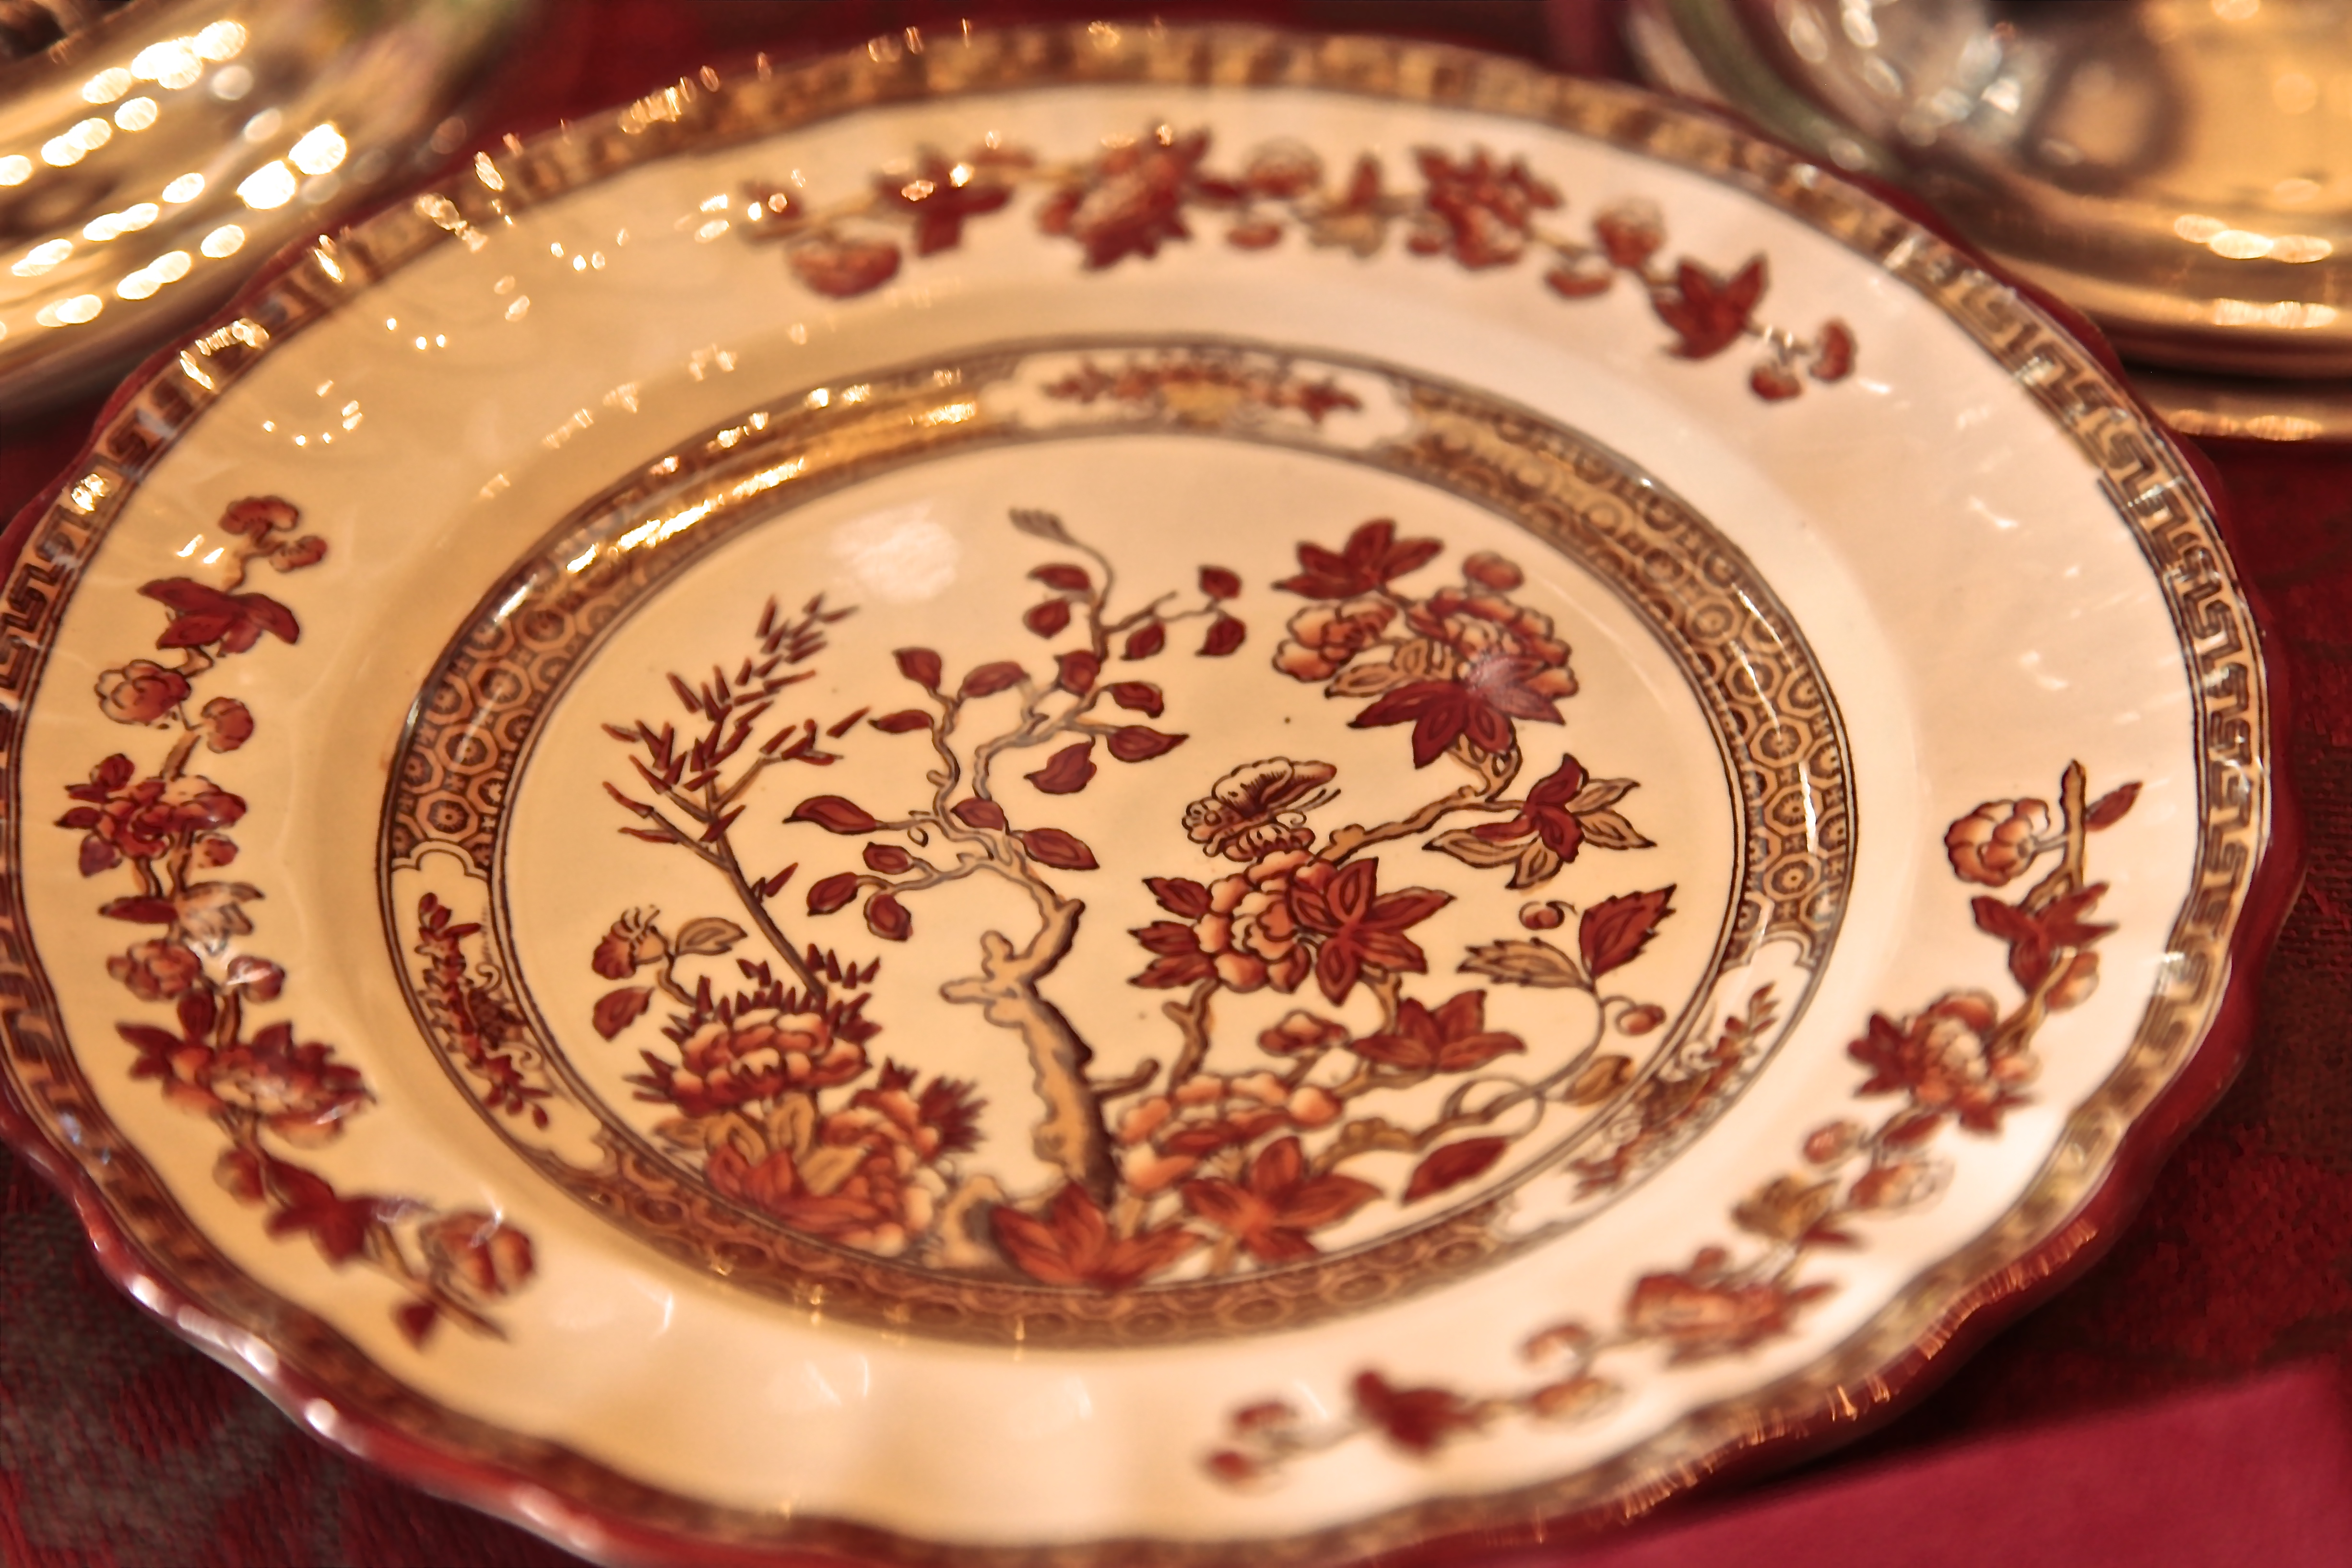 Even though I wanted it elegant, mixing different patterns of china made it more playful, visually exciting and expressed my unique style and showed off some favorite treasures, family heirlooms and flea market finds.